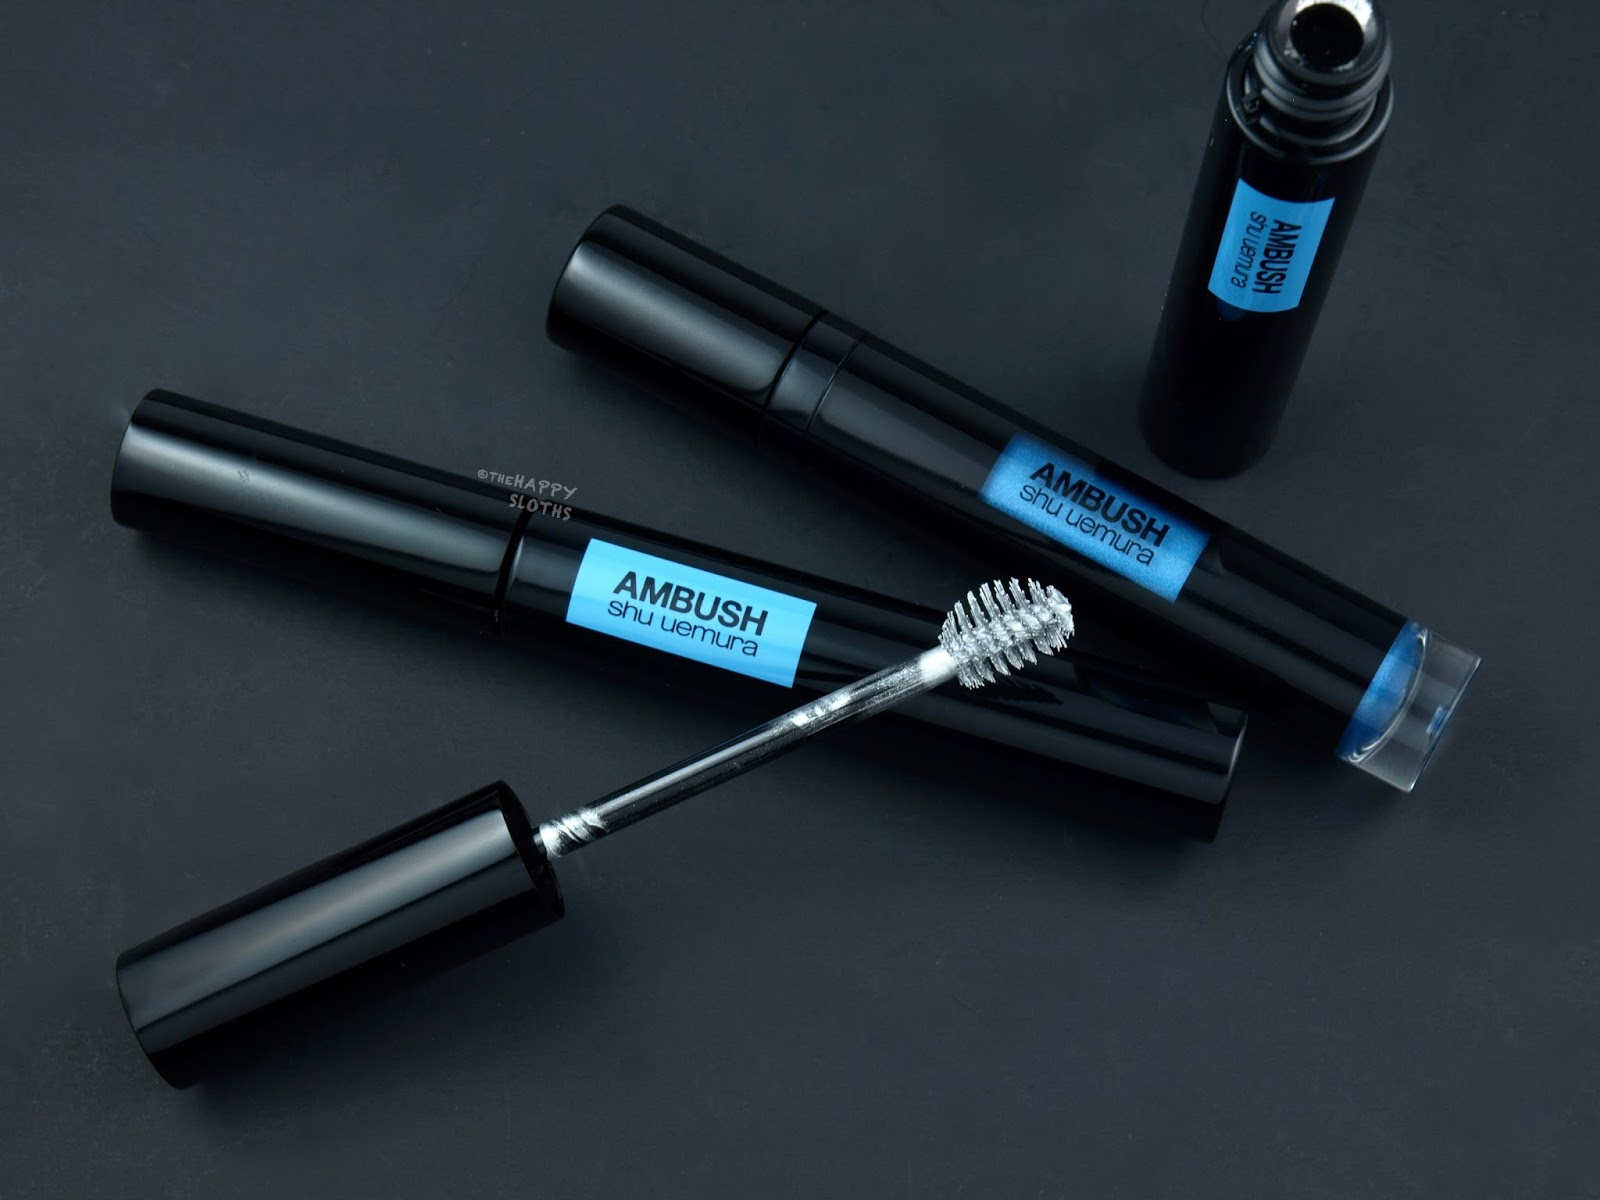 Shu Uemura x AMBUSH Collection | Eyebrow Manicure & Eye Foil: Review and Swatches